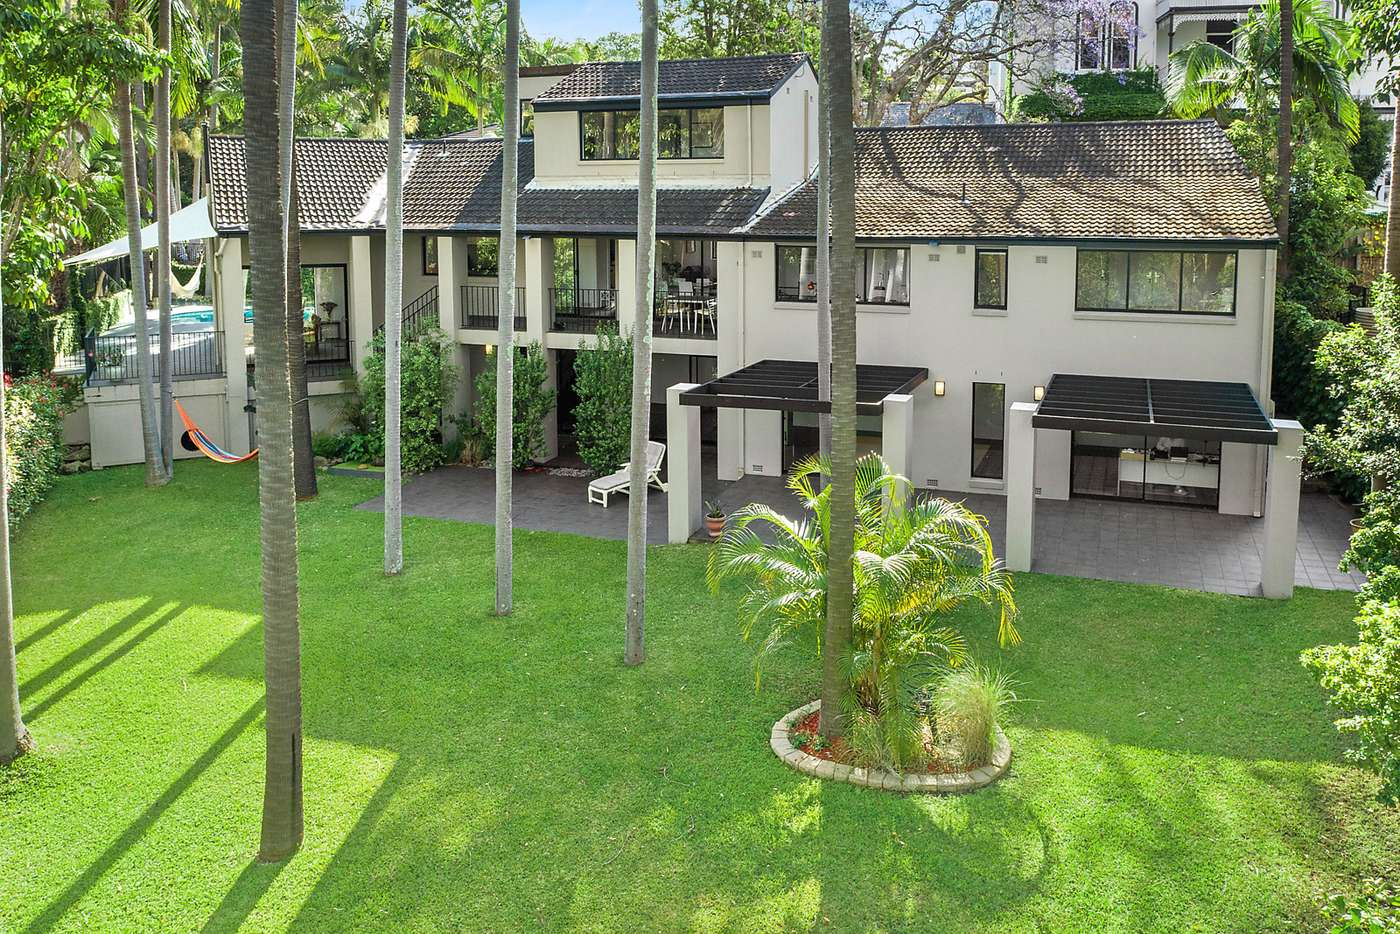 Main view of Homely house listing, 75 Alexandra Street, Hunters Hill NSW 2110